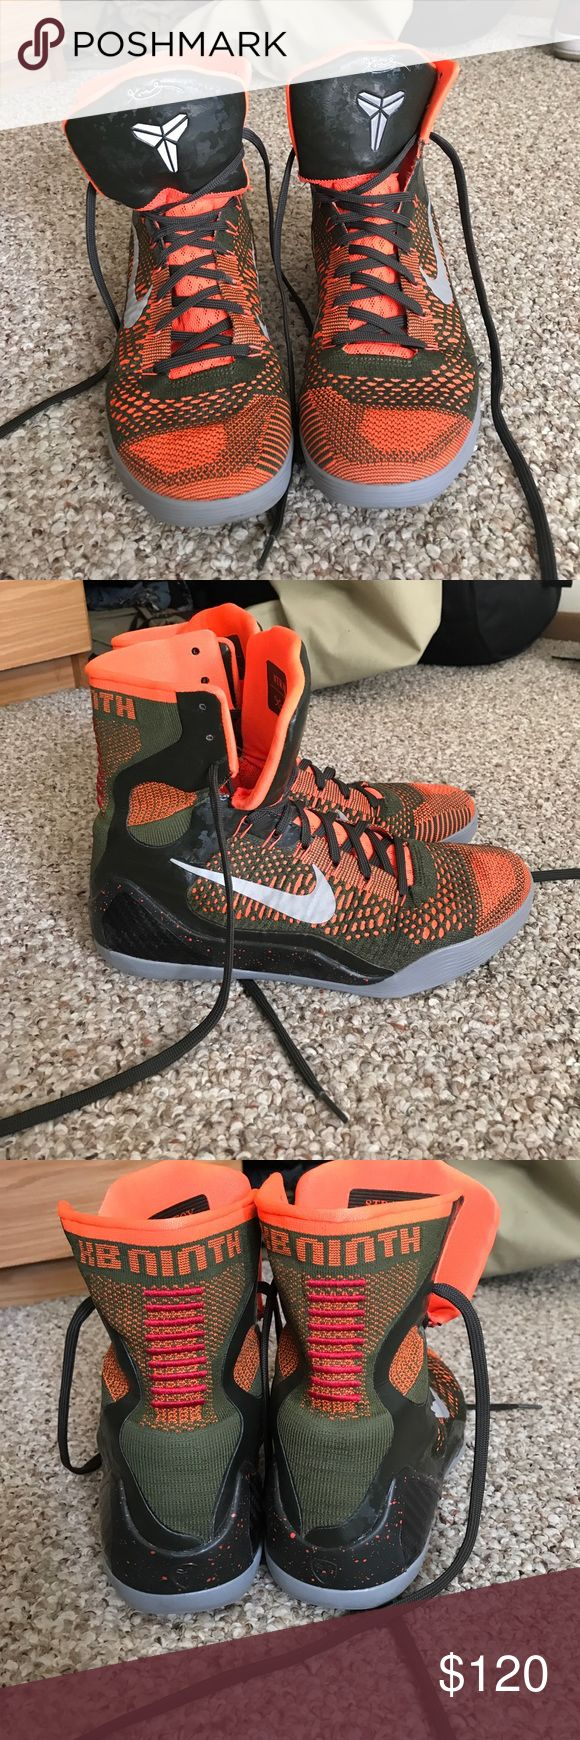 Rare Kobe High Top Basketball Shoes Only worn a handful of times and only worn in a gym. Never worn outside. Great condition. No box. Nike Shoes Athletic Shoes